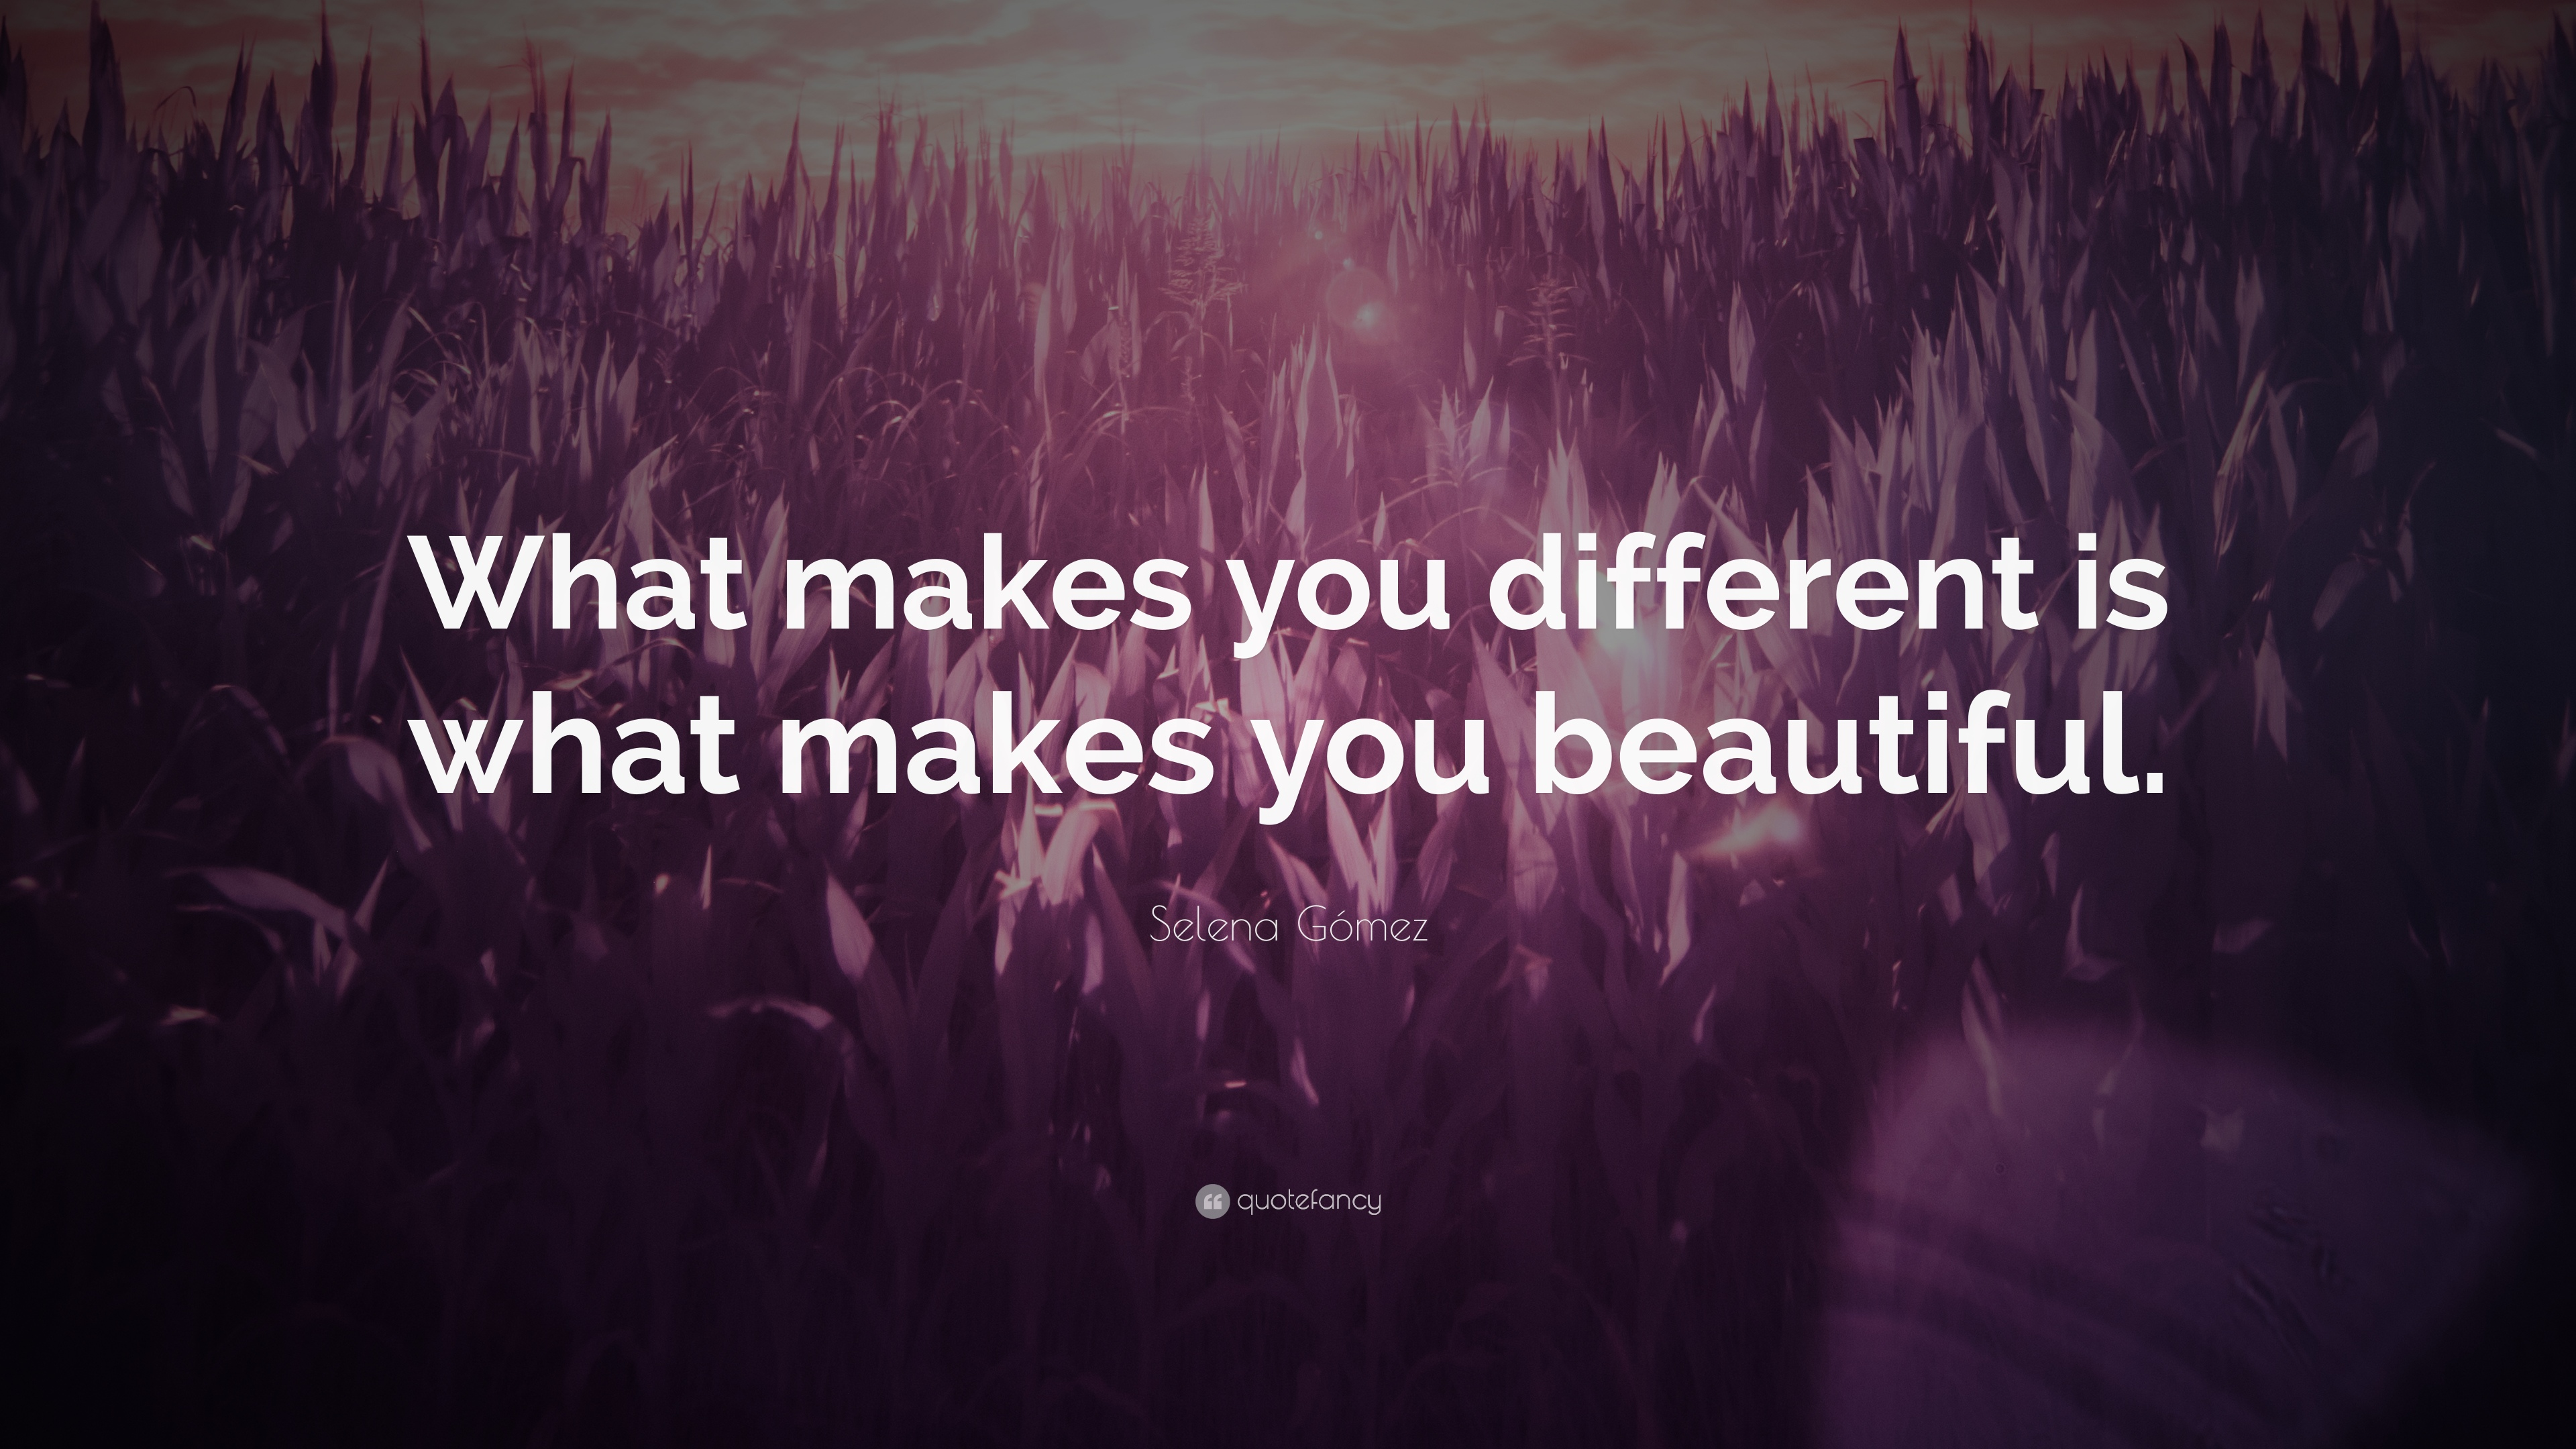 Selena Gomez Quote What Makes You Different Is What Makes You Beautiful 10 Wallpapers Quotefancy